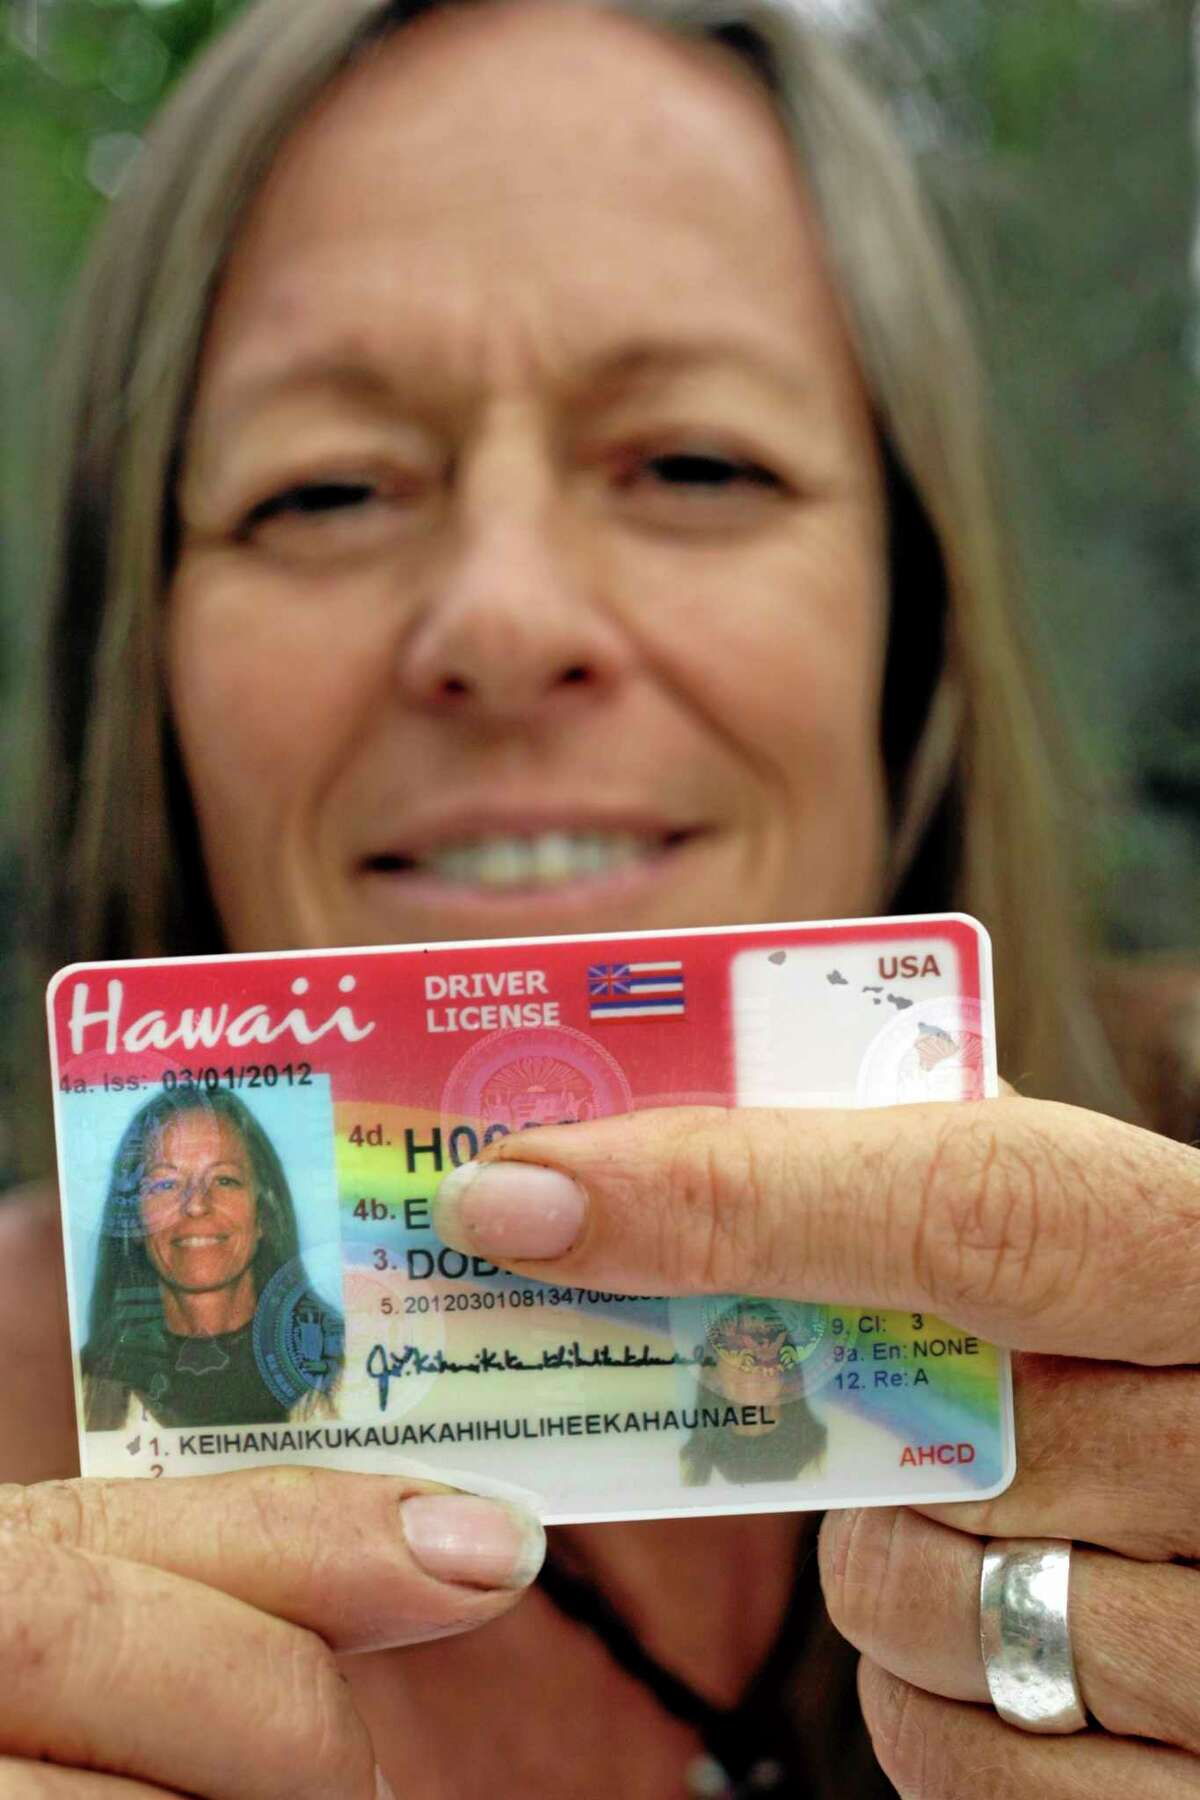 """Janice """"Lokelani"""" Keihanaikukauakahihulihe'ekahaunaele holds her Hawaii drivers license that lacks the space for her full name. Friday, Sept. 13, 2013 in Ocean View, Hawaii. At 36 characters and 19 syllables, the surname is so long that she couldn't get a driver's license with her correct name. (AP Photo/Chris Stewart)"""